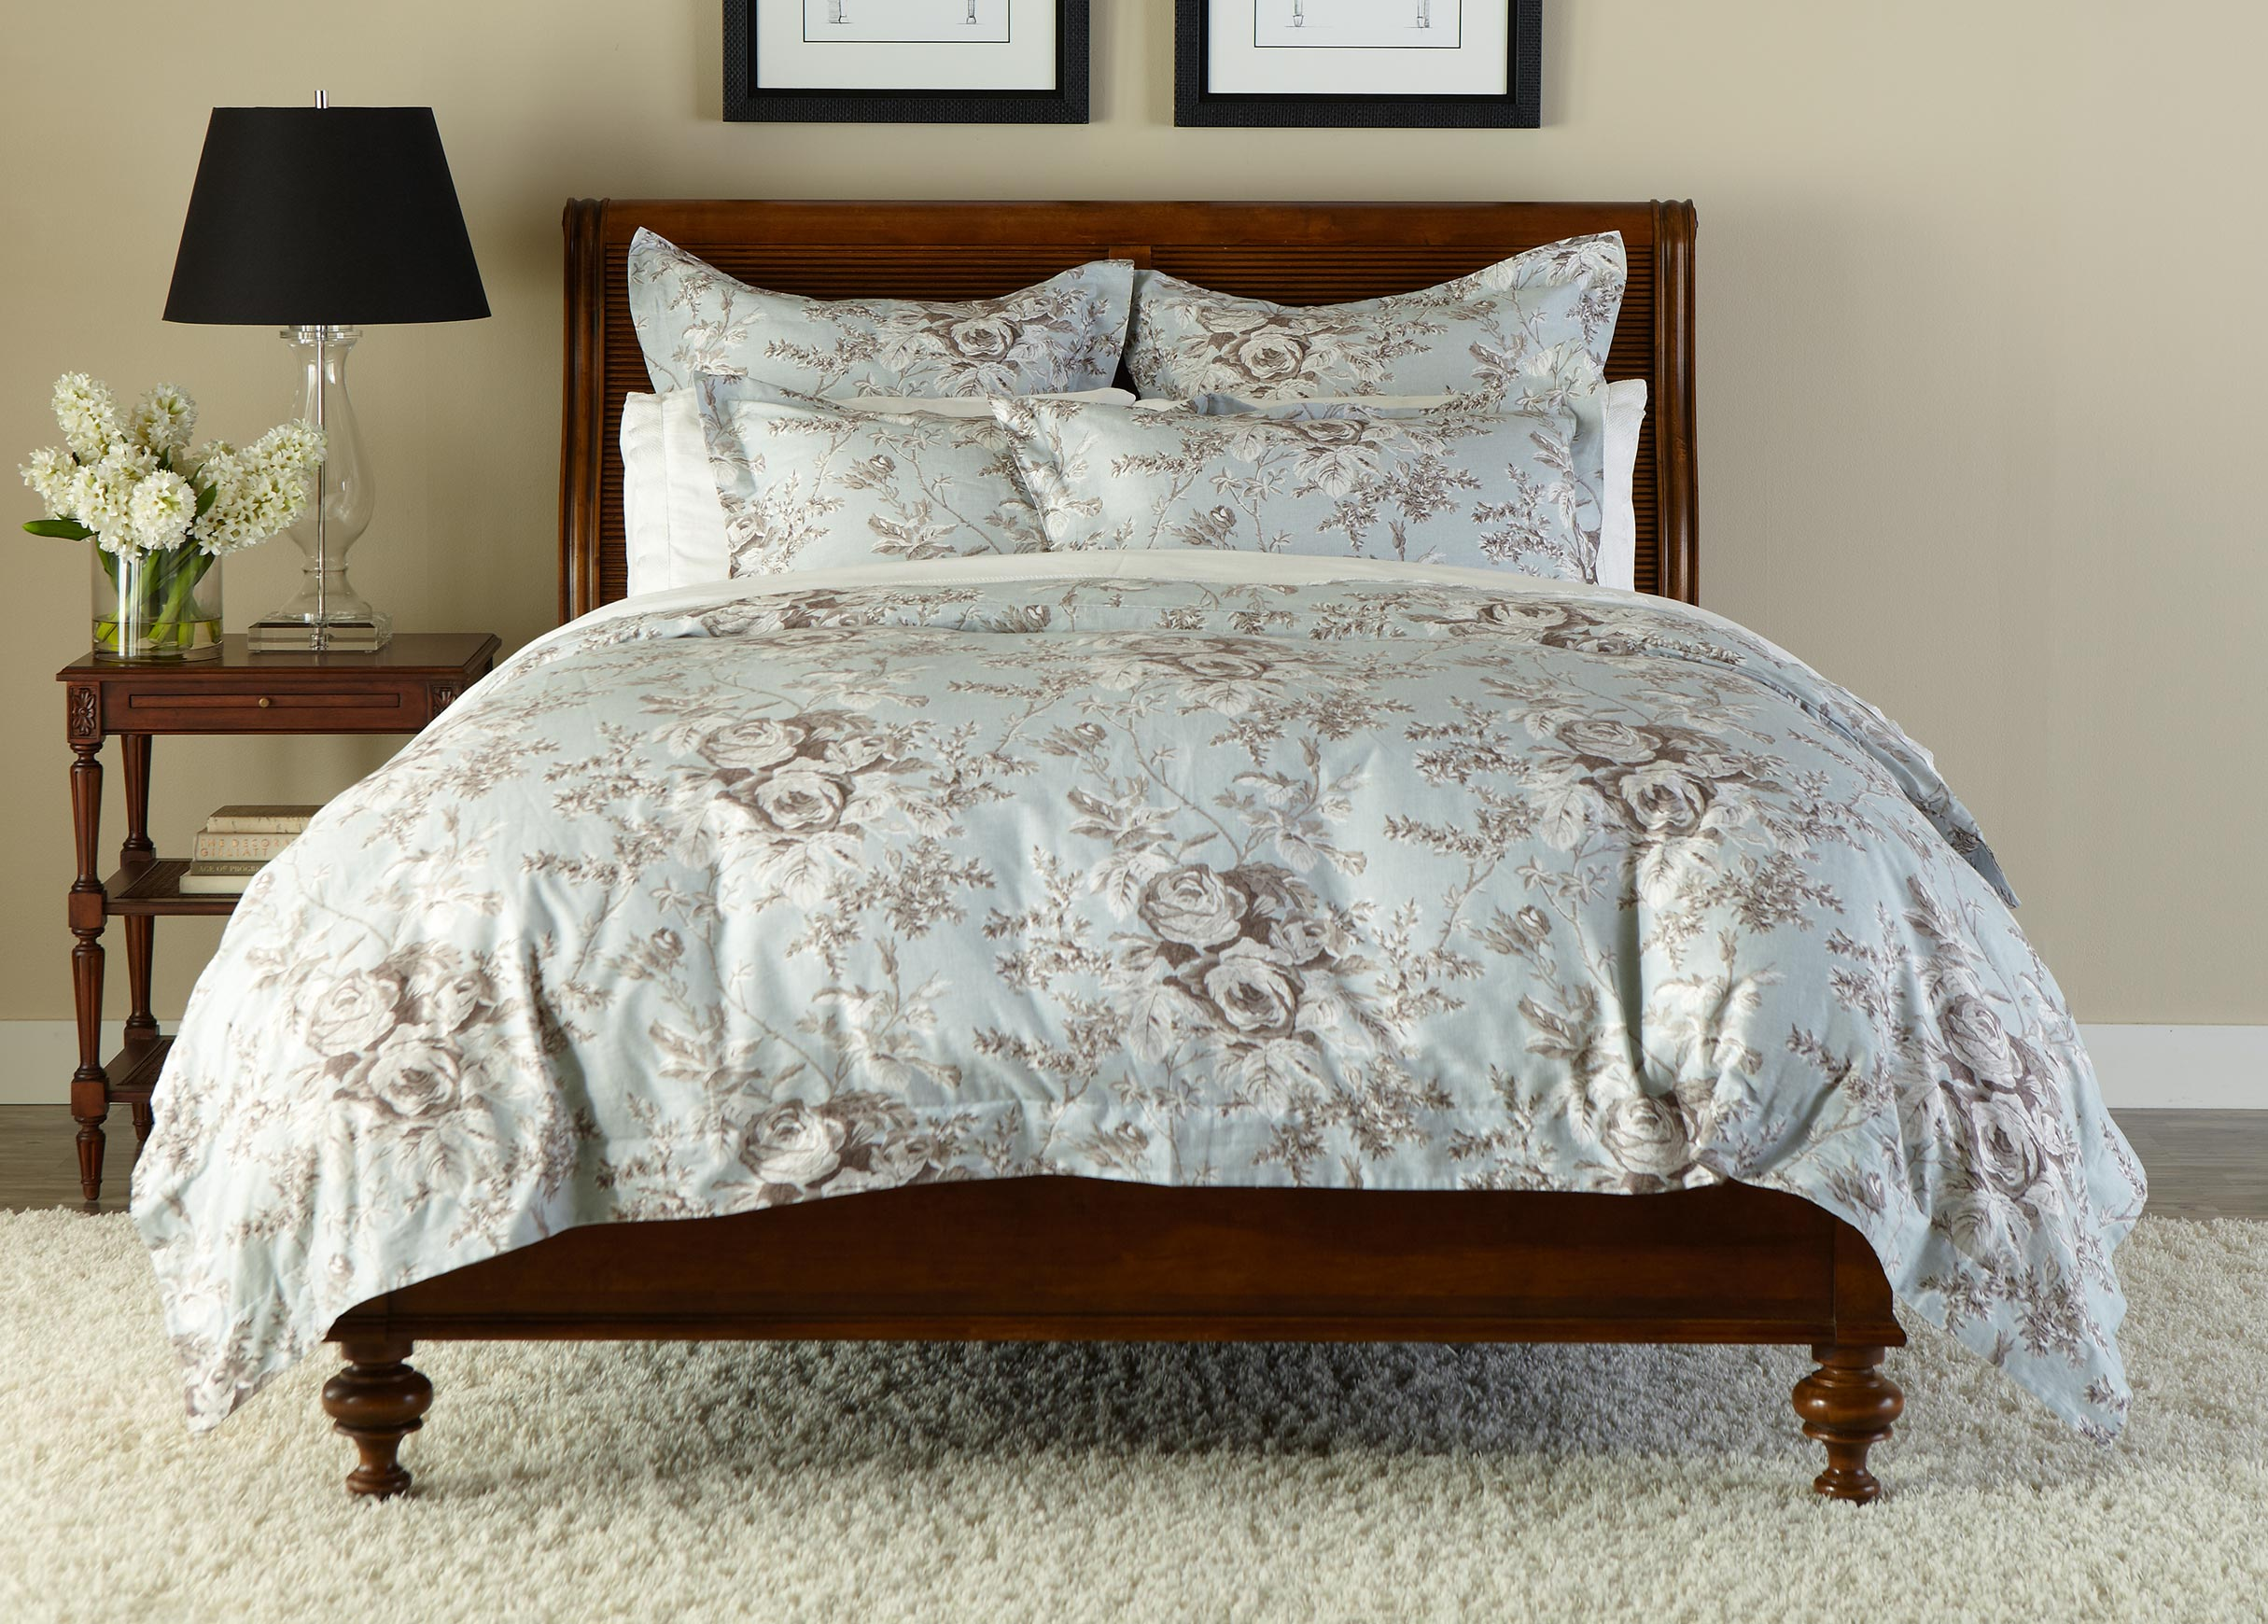 bath cover free floral shelia cotton product today overstock bedding duvet linen shipping